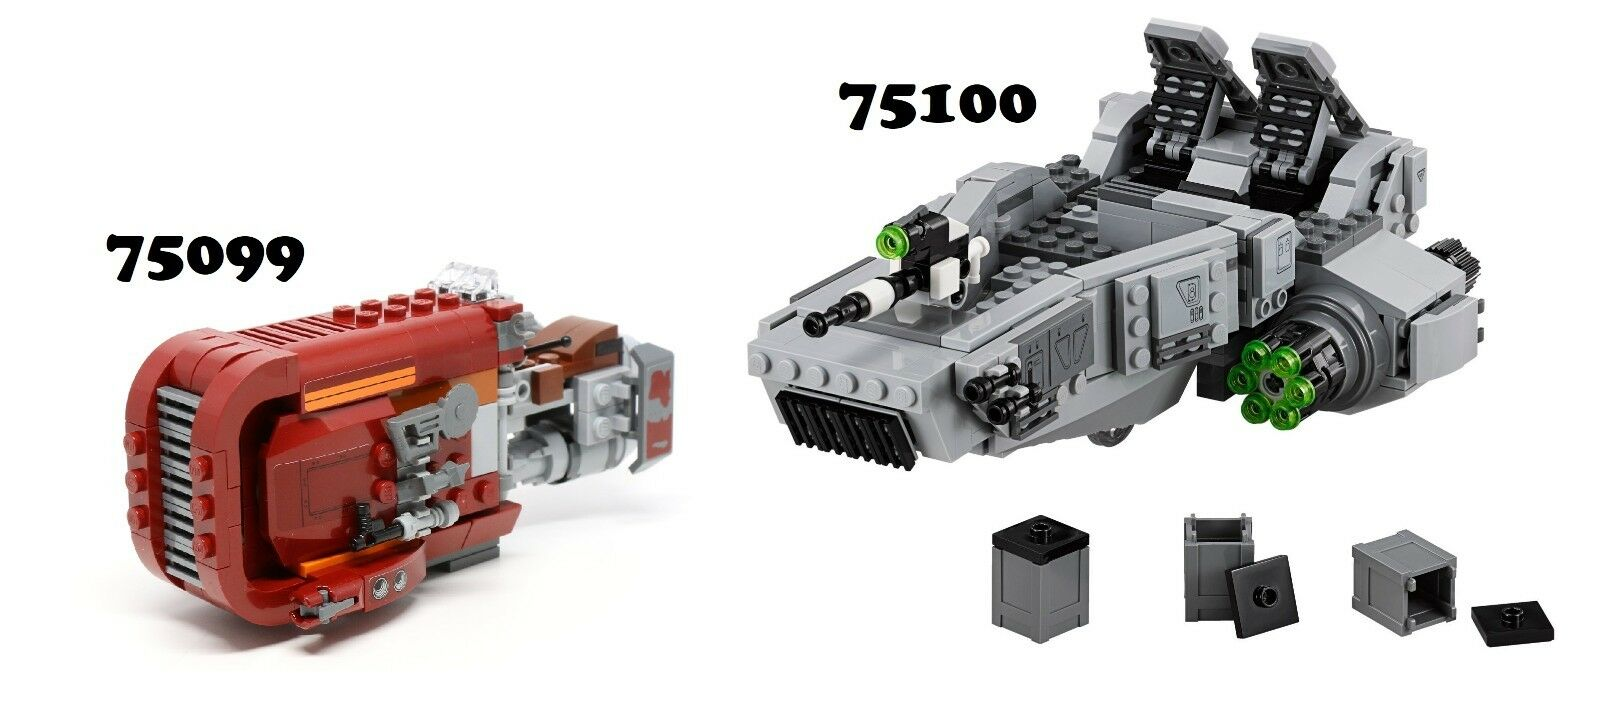 NEWLego Star Wars 75099 & 75100 Combo Sets NO MINIFIGURES